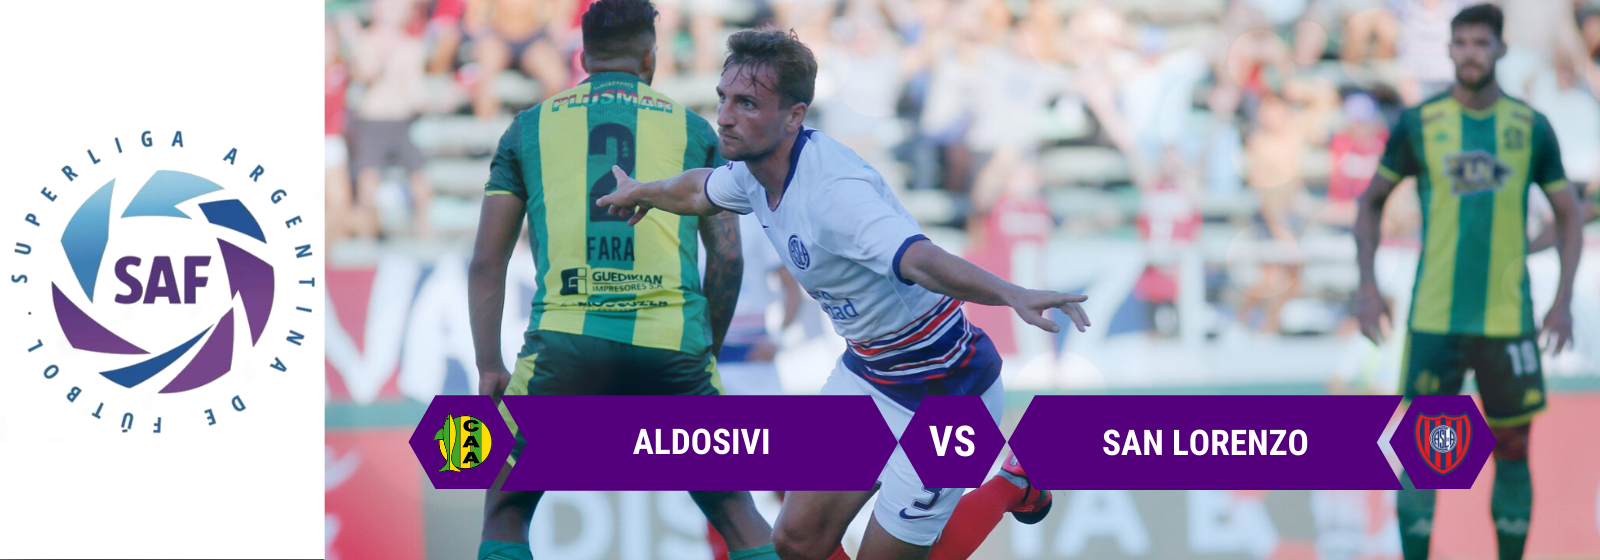 Asianconnect: Aldosivi vs San Lorenzo Odds for March 01, 2020